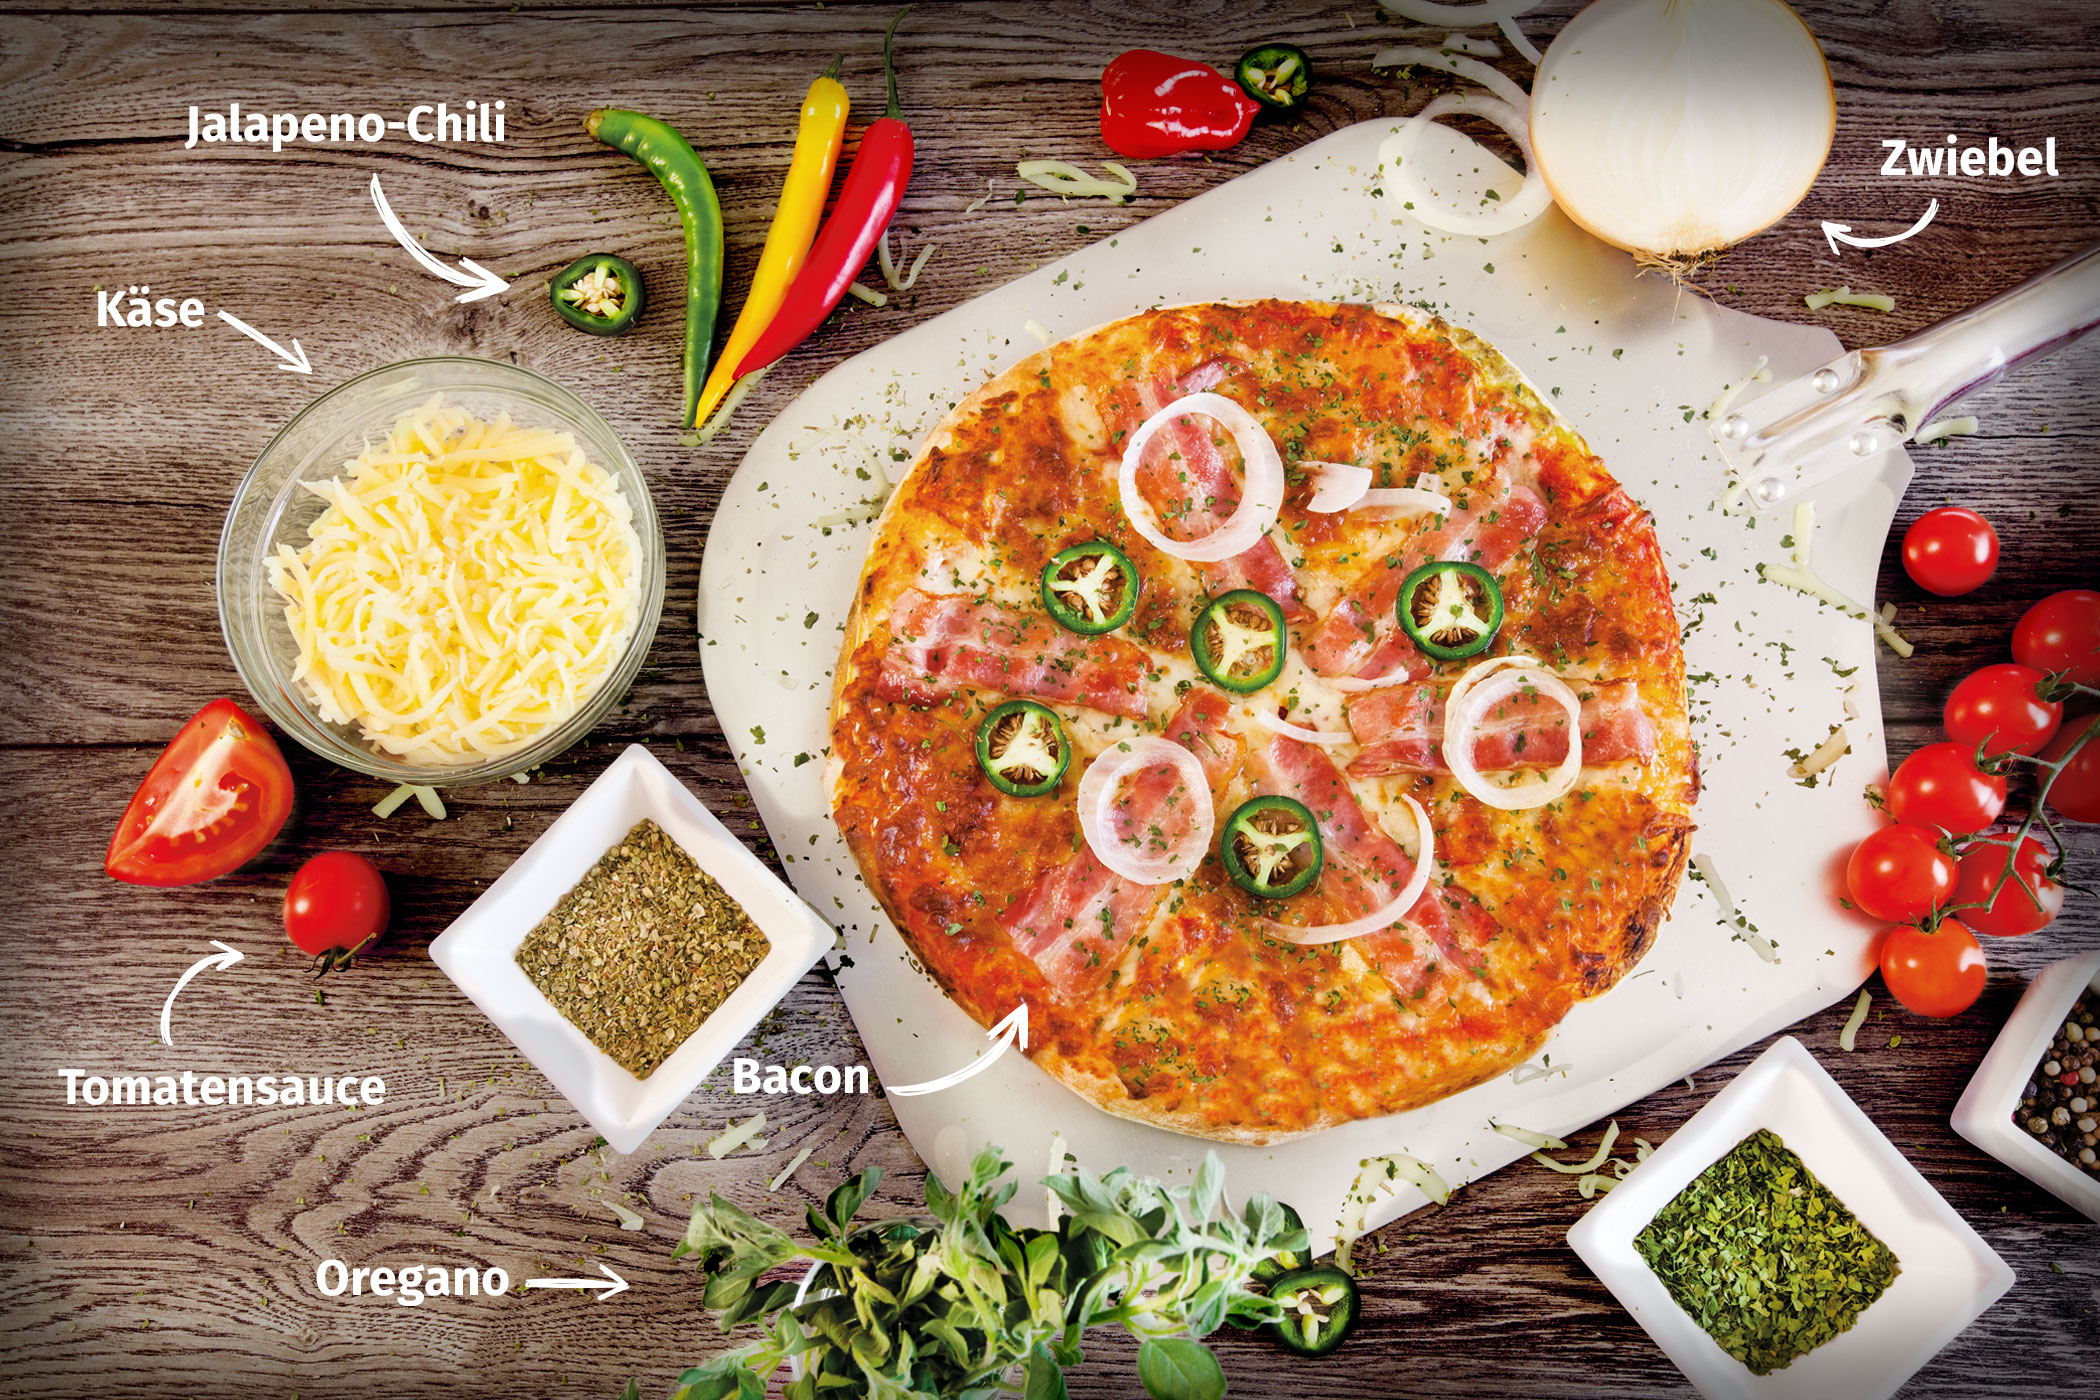 Original Franzesco Pizza Chili mit Zutaten